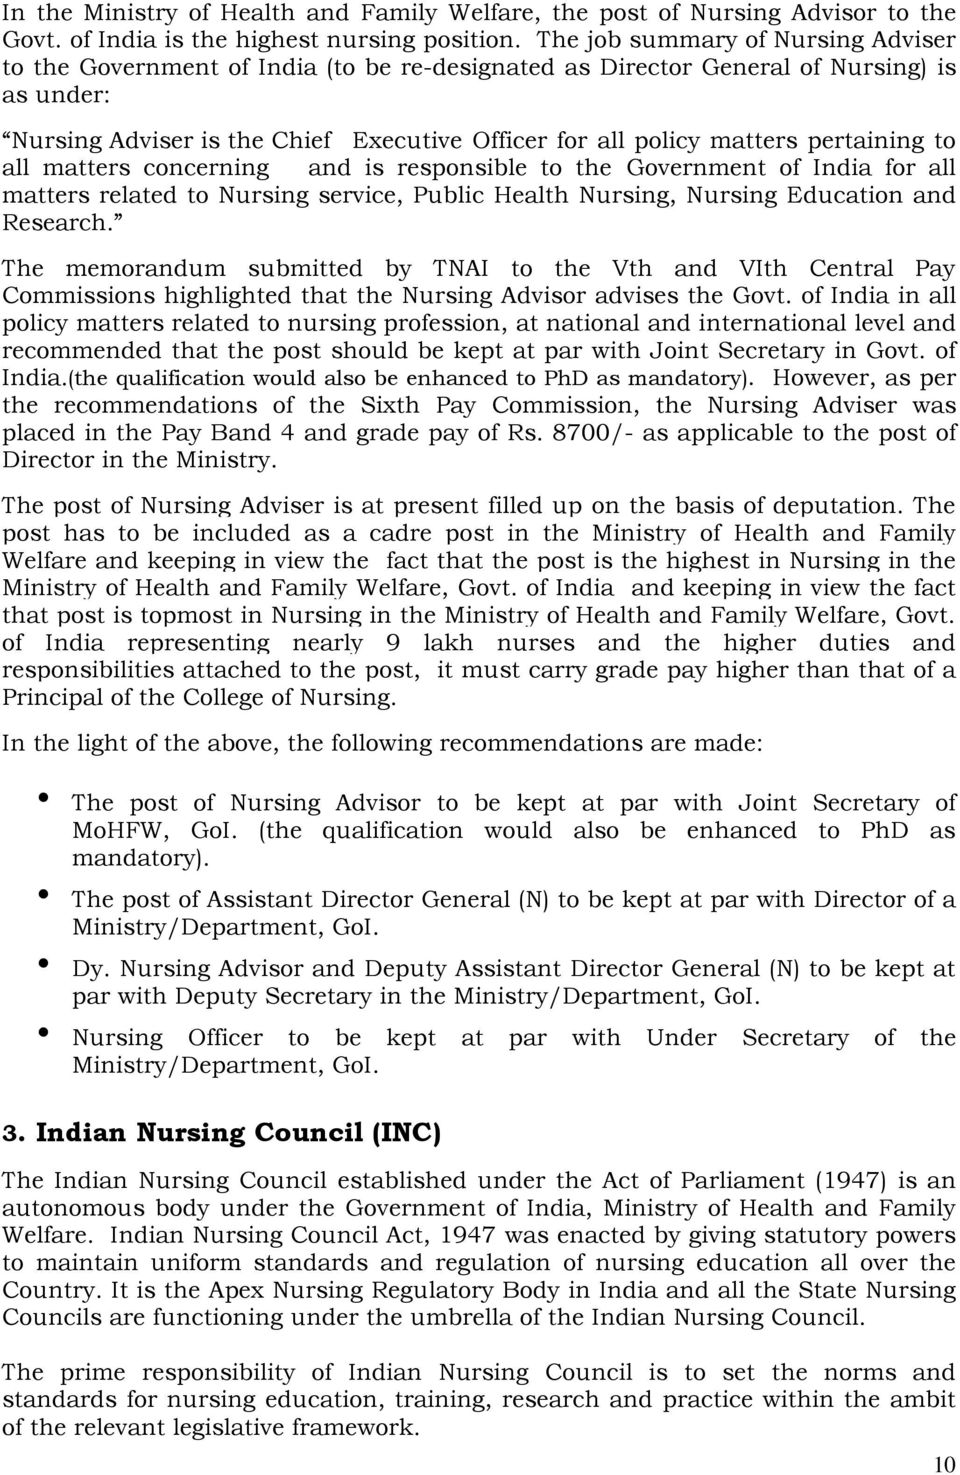 Pertaining To All Matters Concerning And Is Responsible The Government Of India For